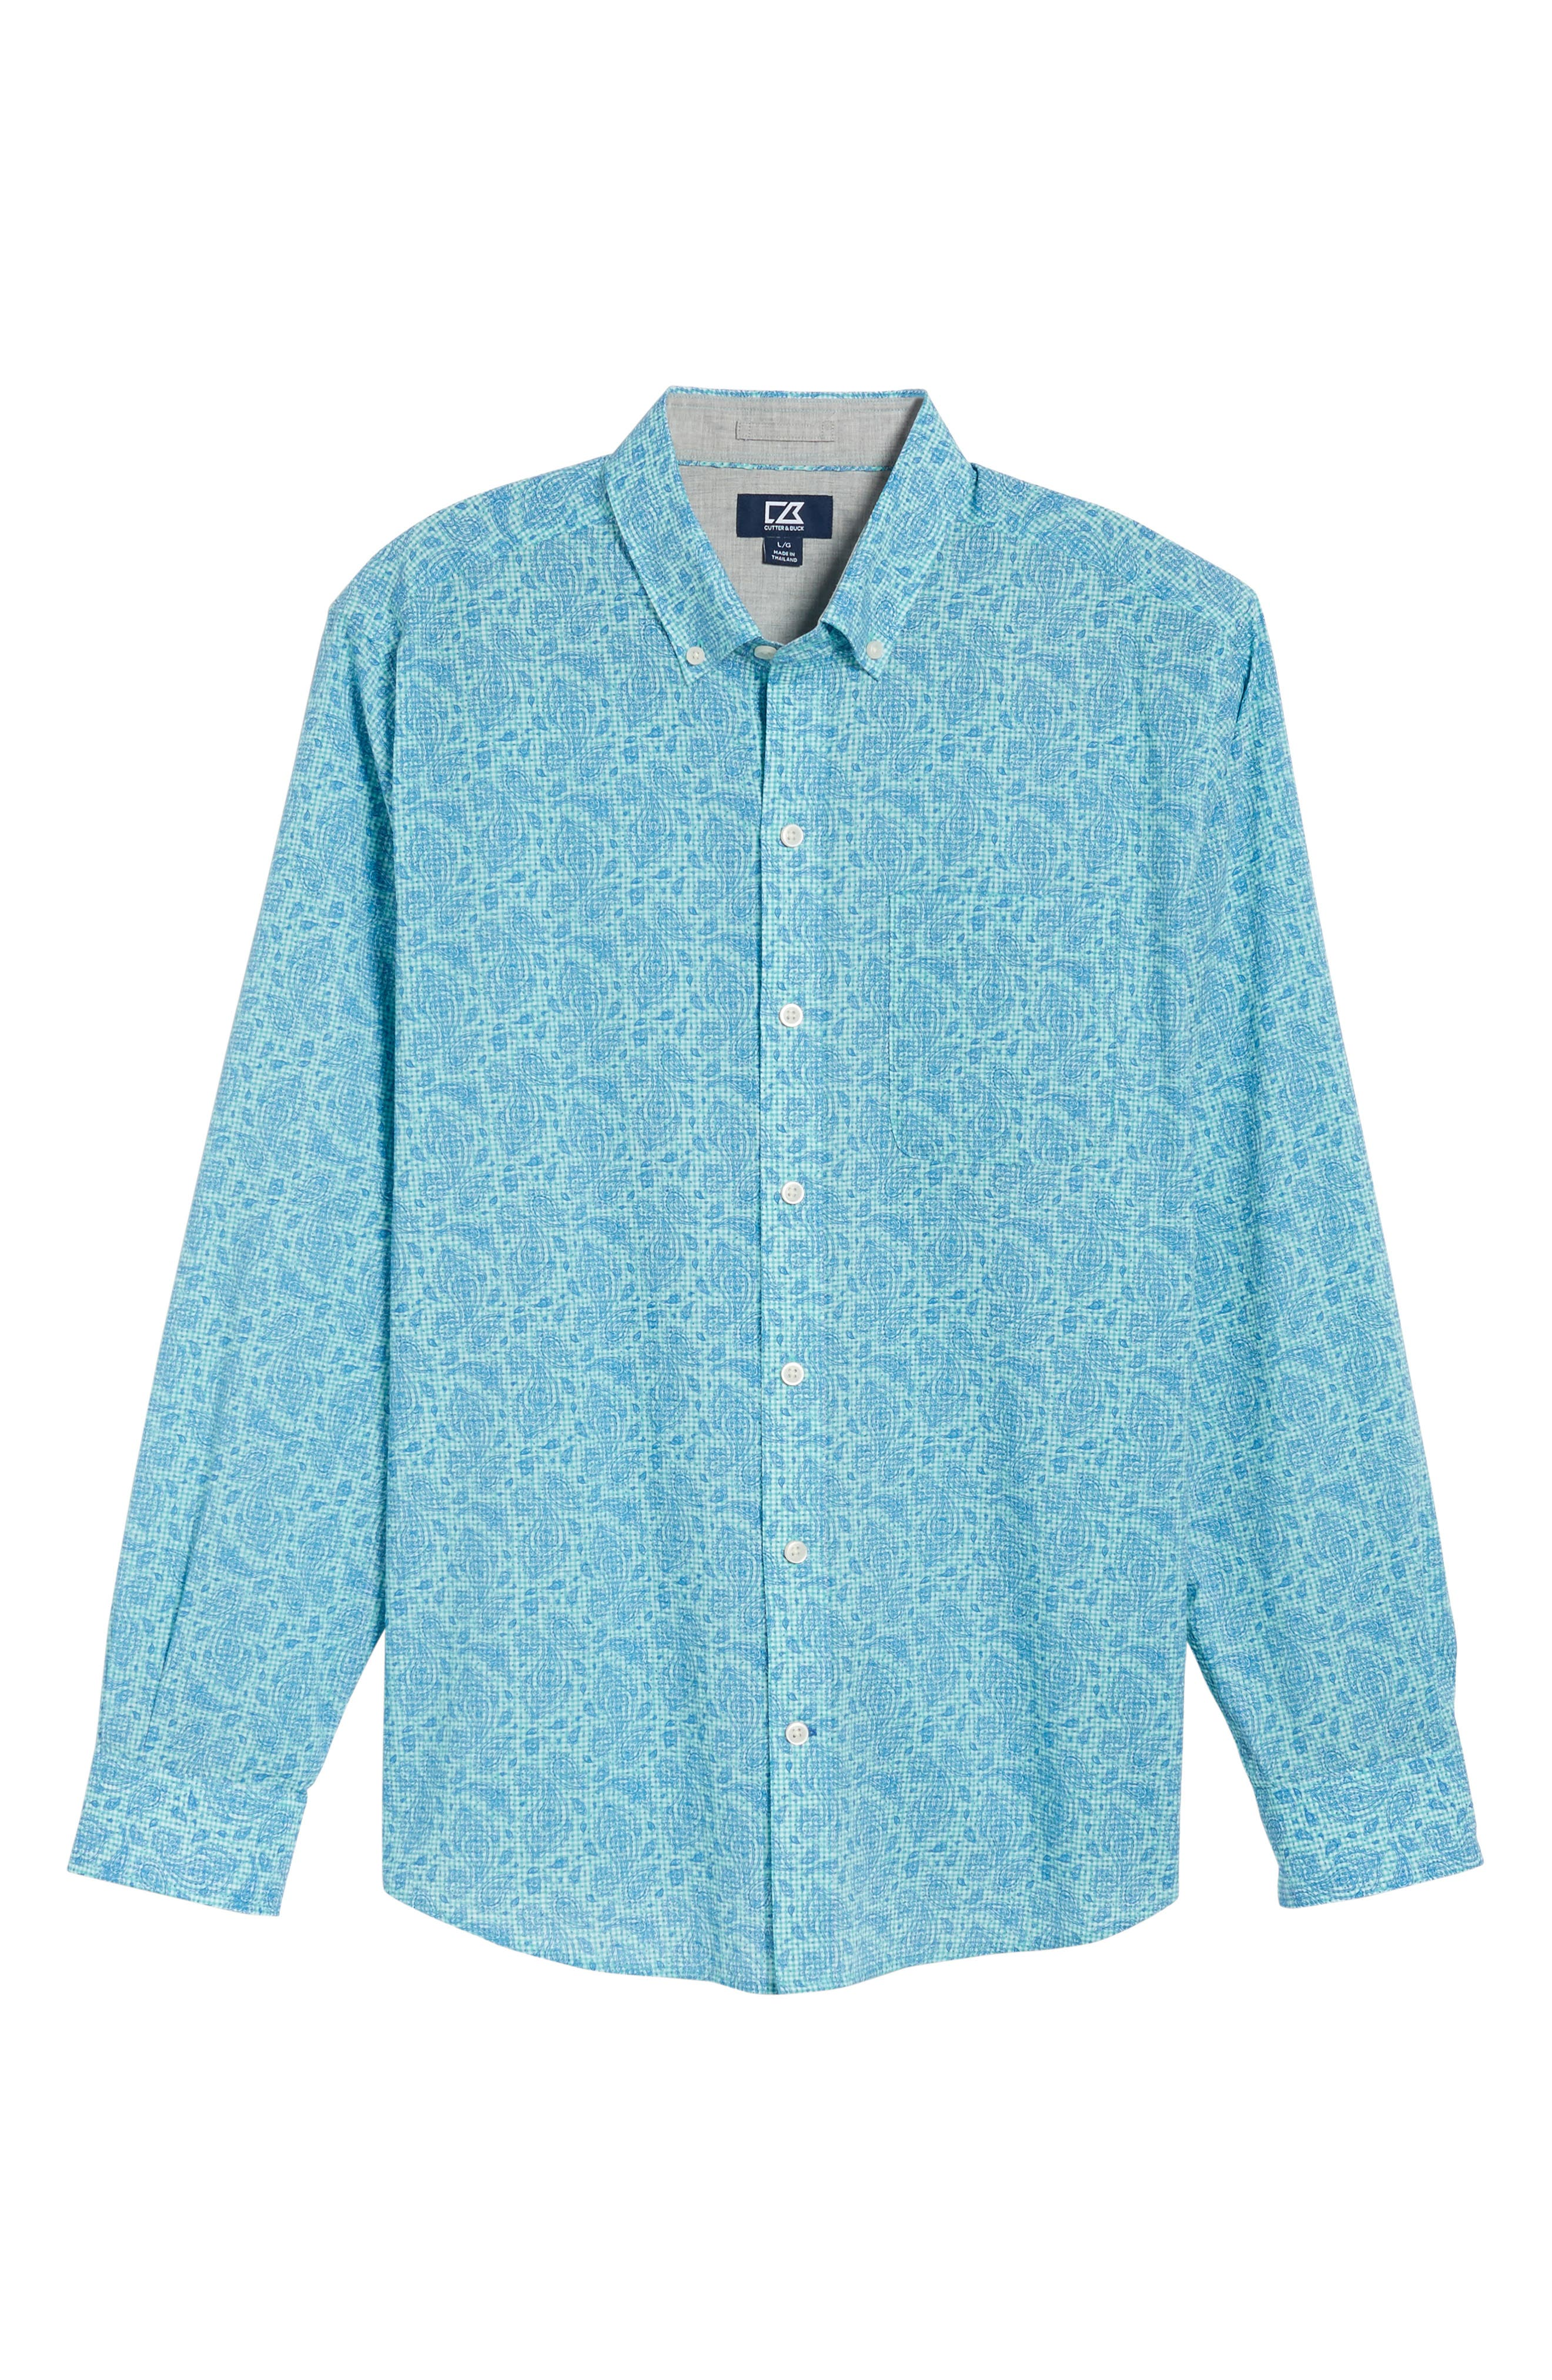 Jameson Classic Fit Print Seersucker Sport Shirt,                             Alternate thumbnail 6, color,                             328